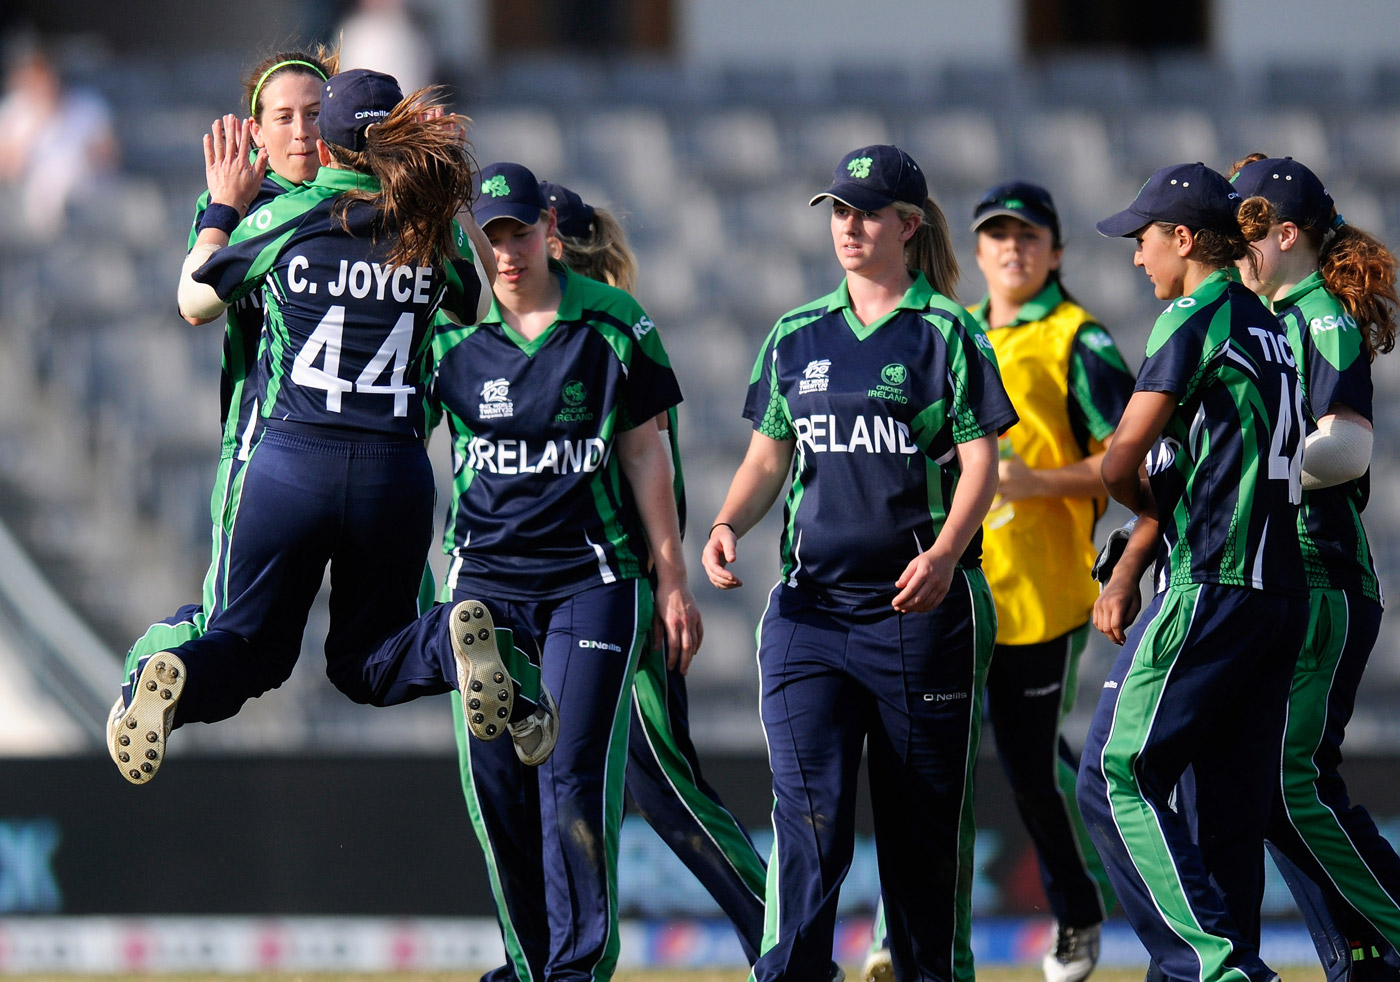 Isobel and Cecelia celebrate a wicket against South Africa in the 2014 World T20